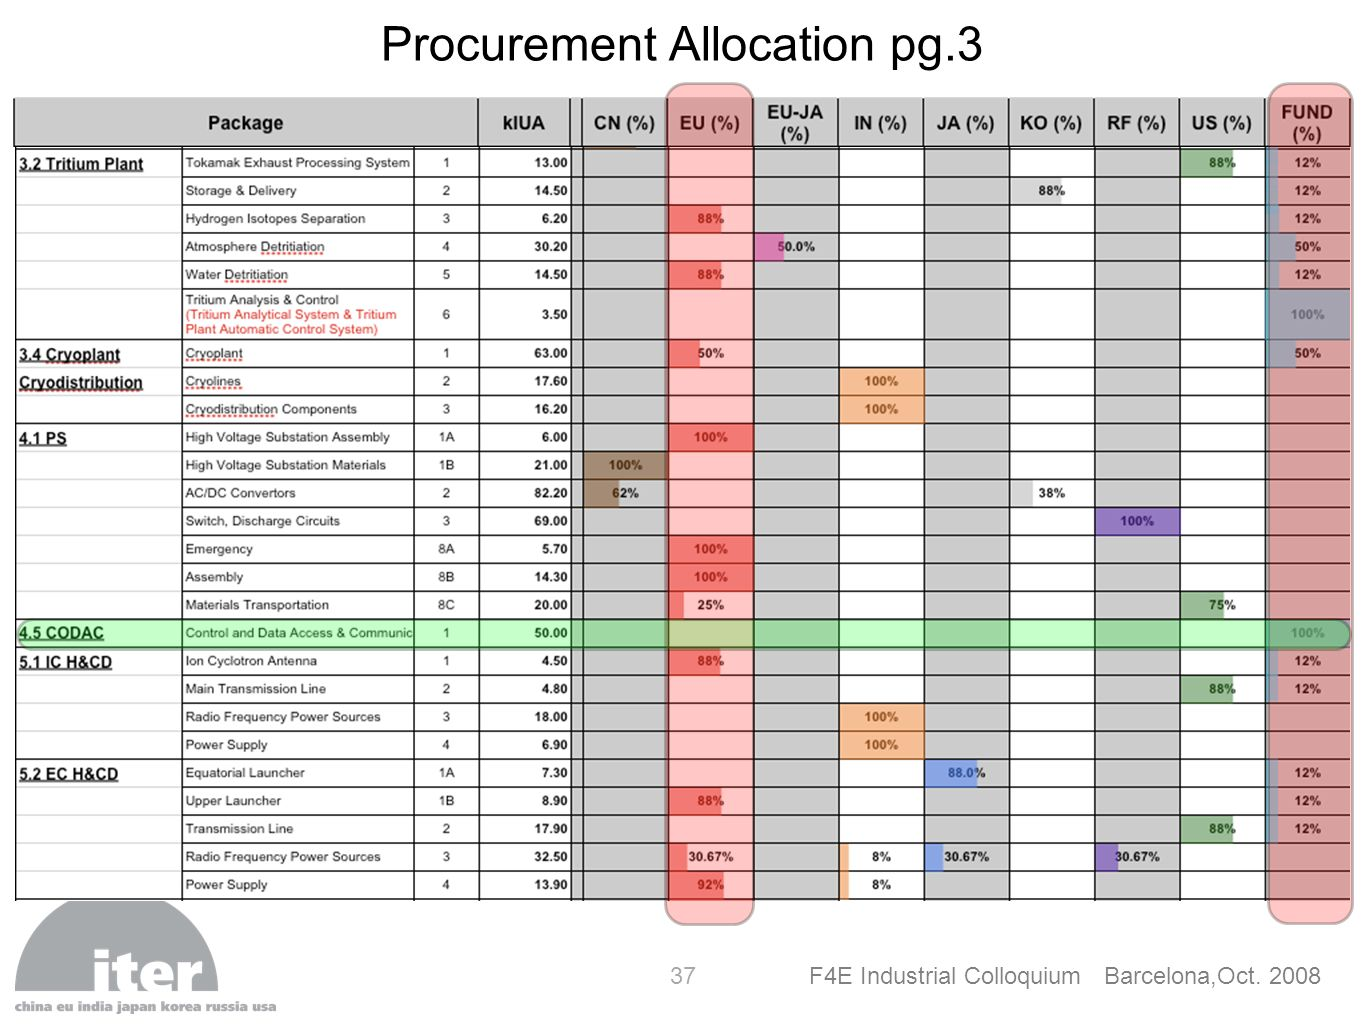 Procurement Allocation pg.3